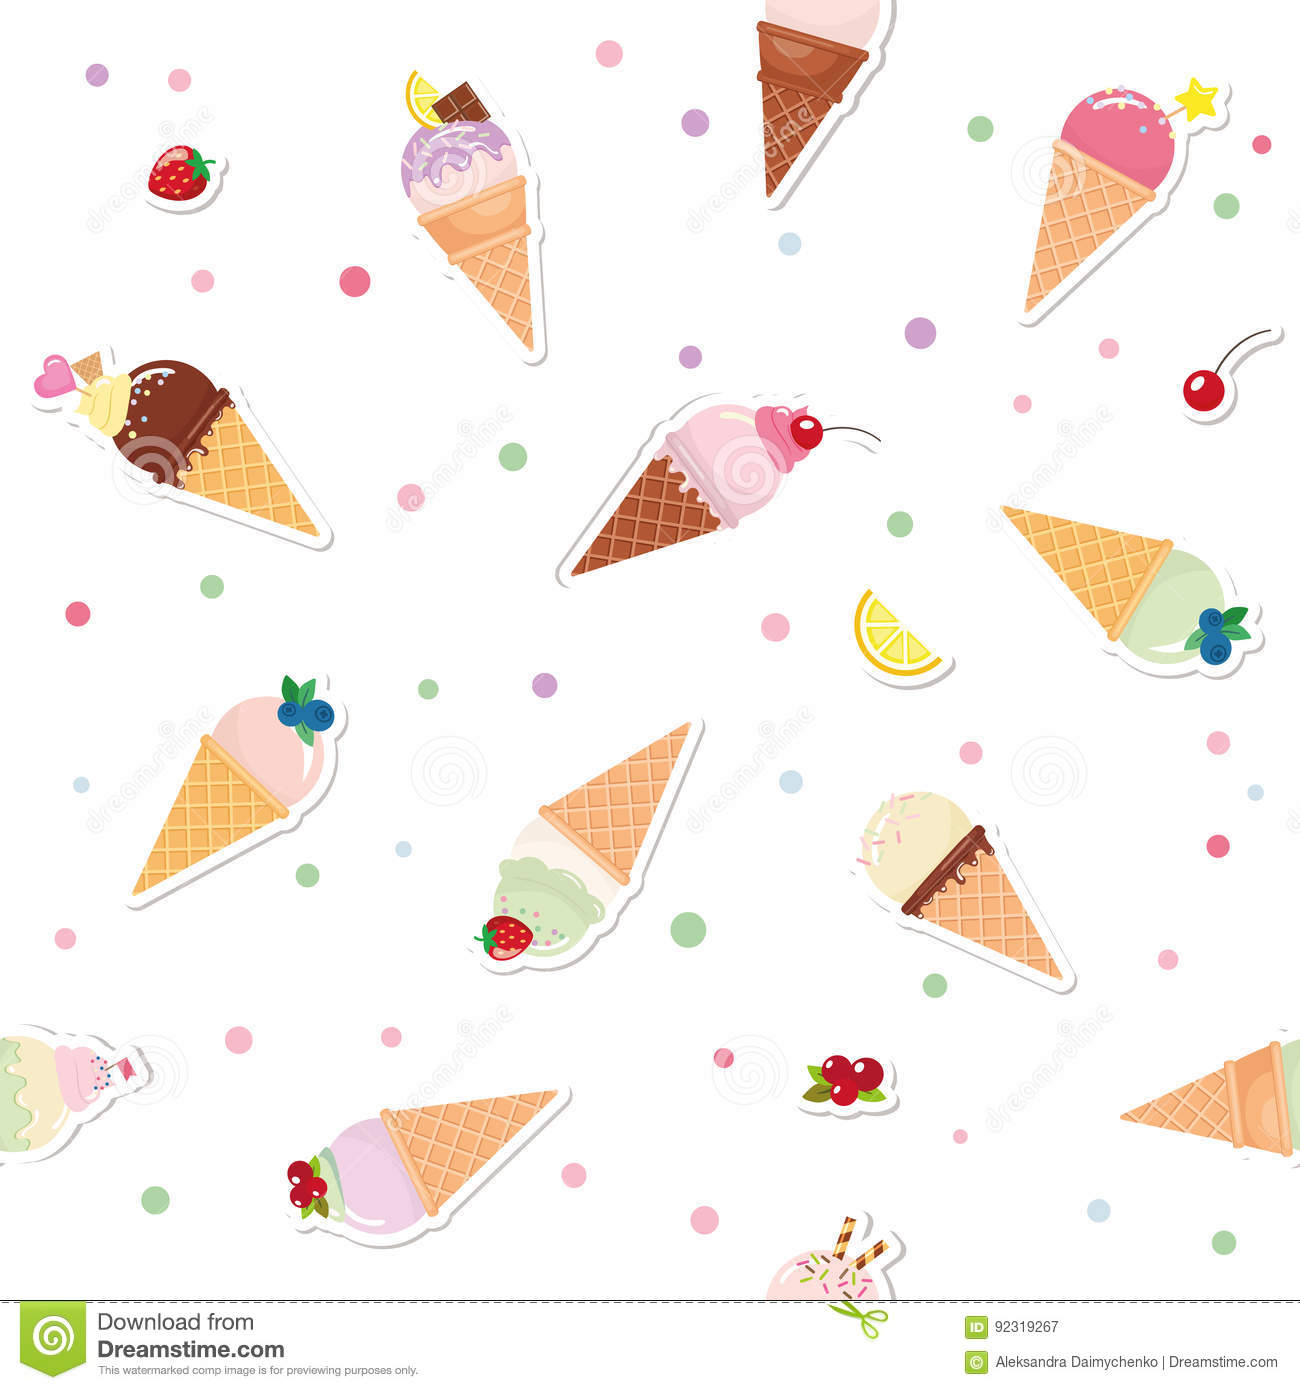 Festive seamless pattern background with paper cutout ice cream festive seamless pattern background with paper cutout ice cream cones fruits and polka dots maxwellsz